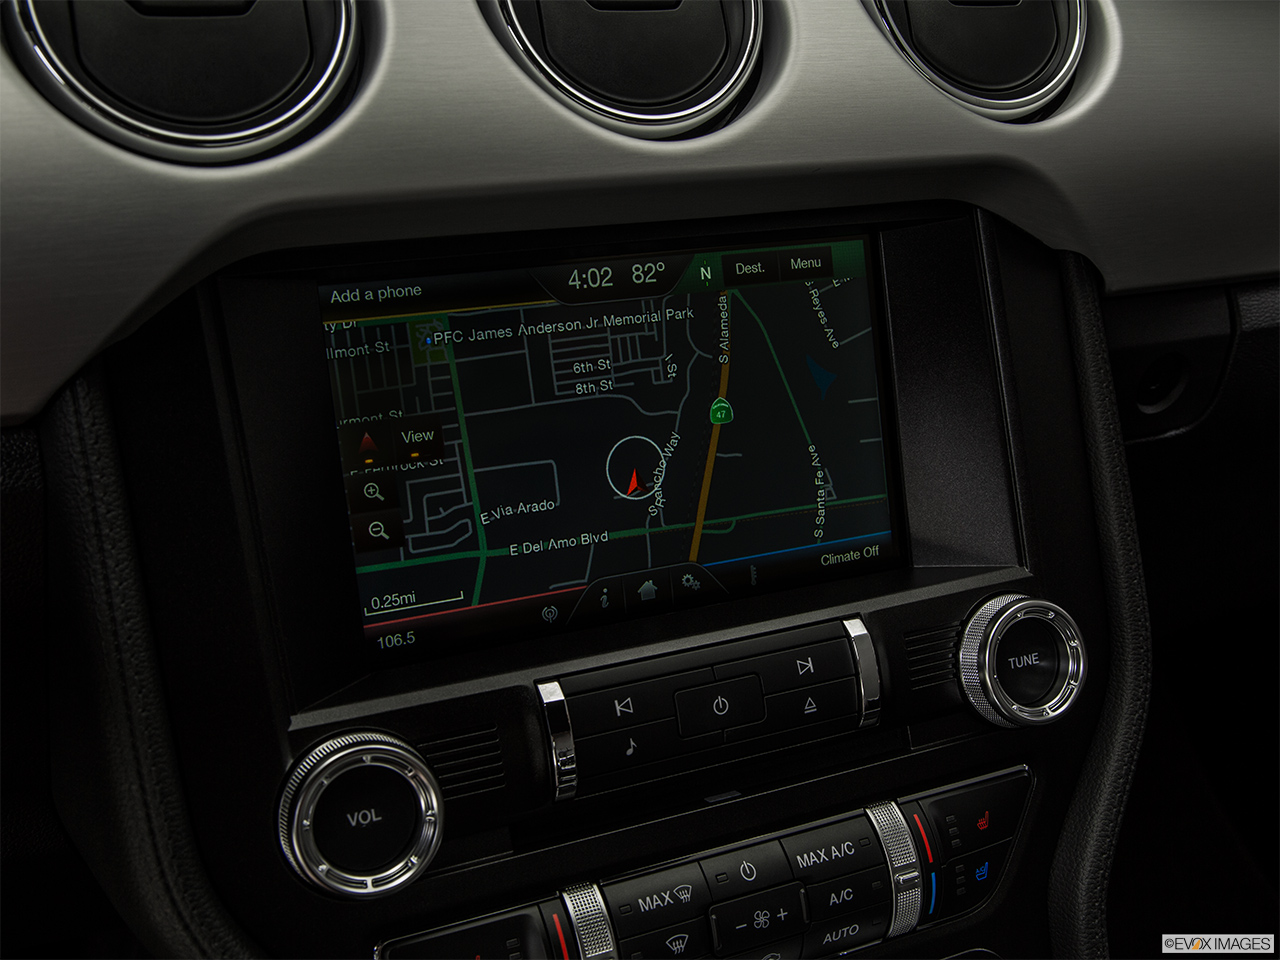 2015 ford mustang 2 door fastback ecoboost driver position view of navigation system